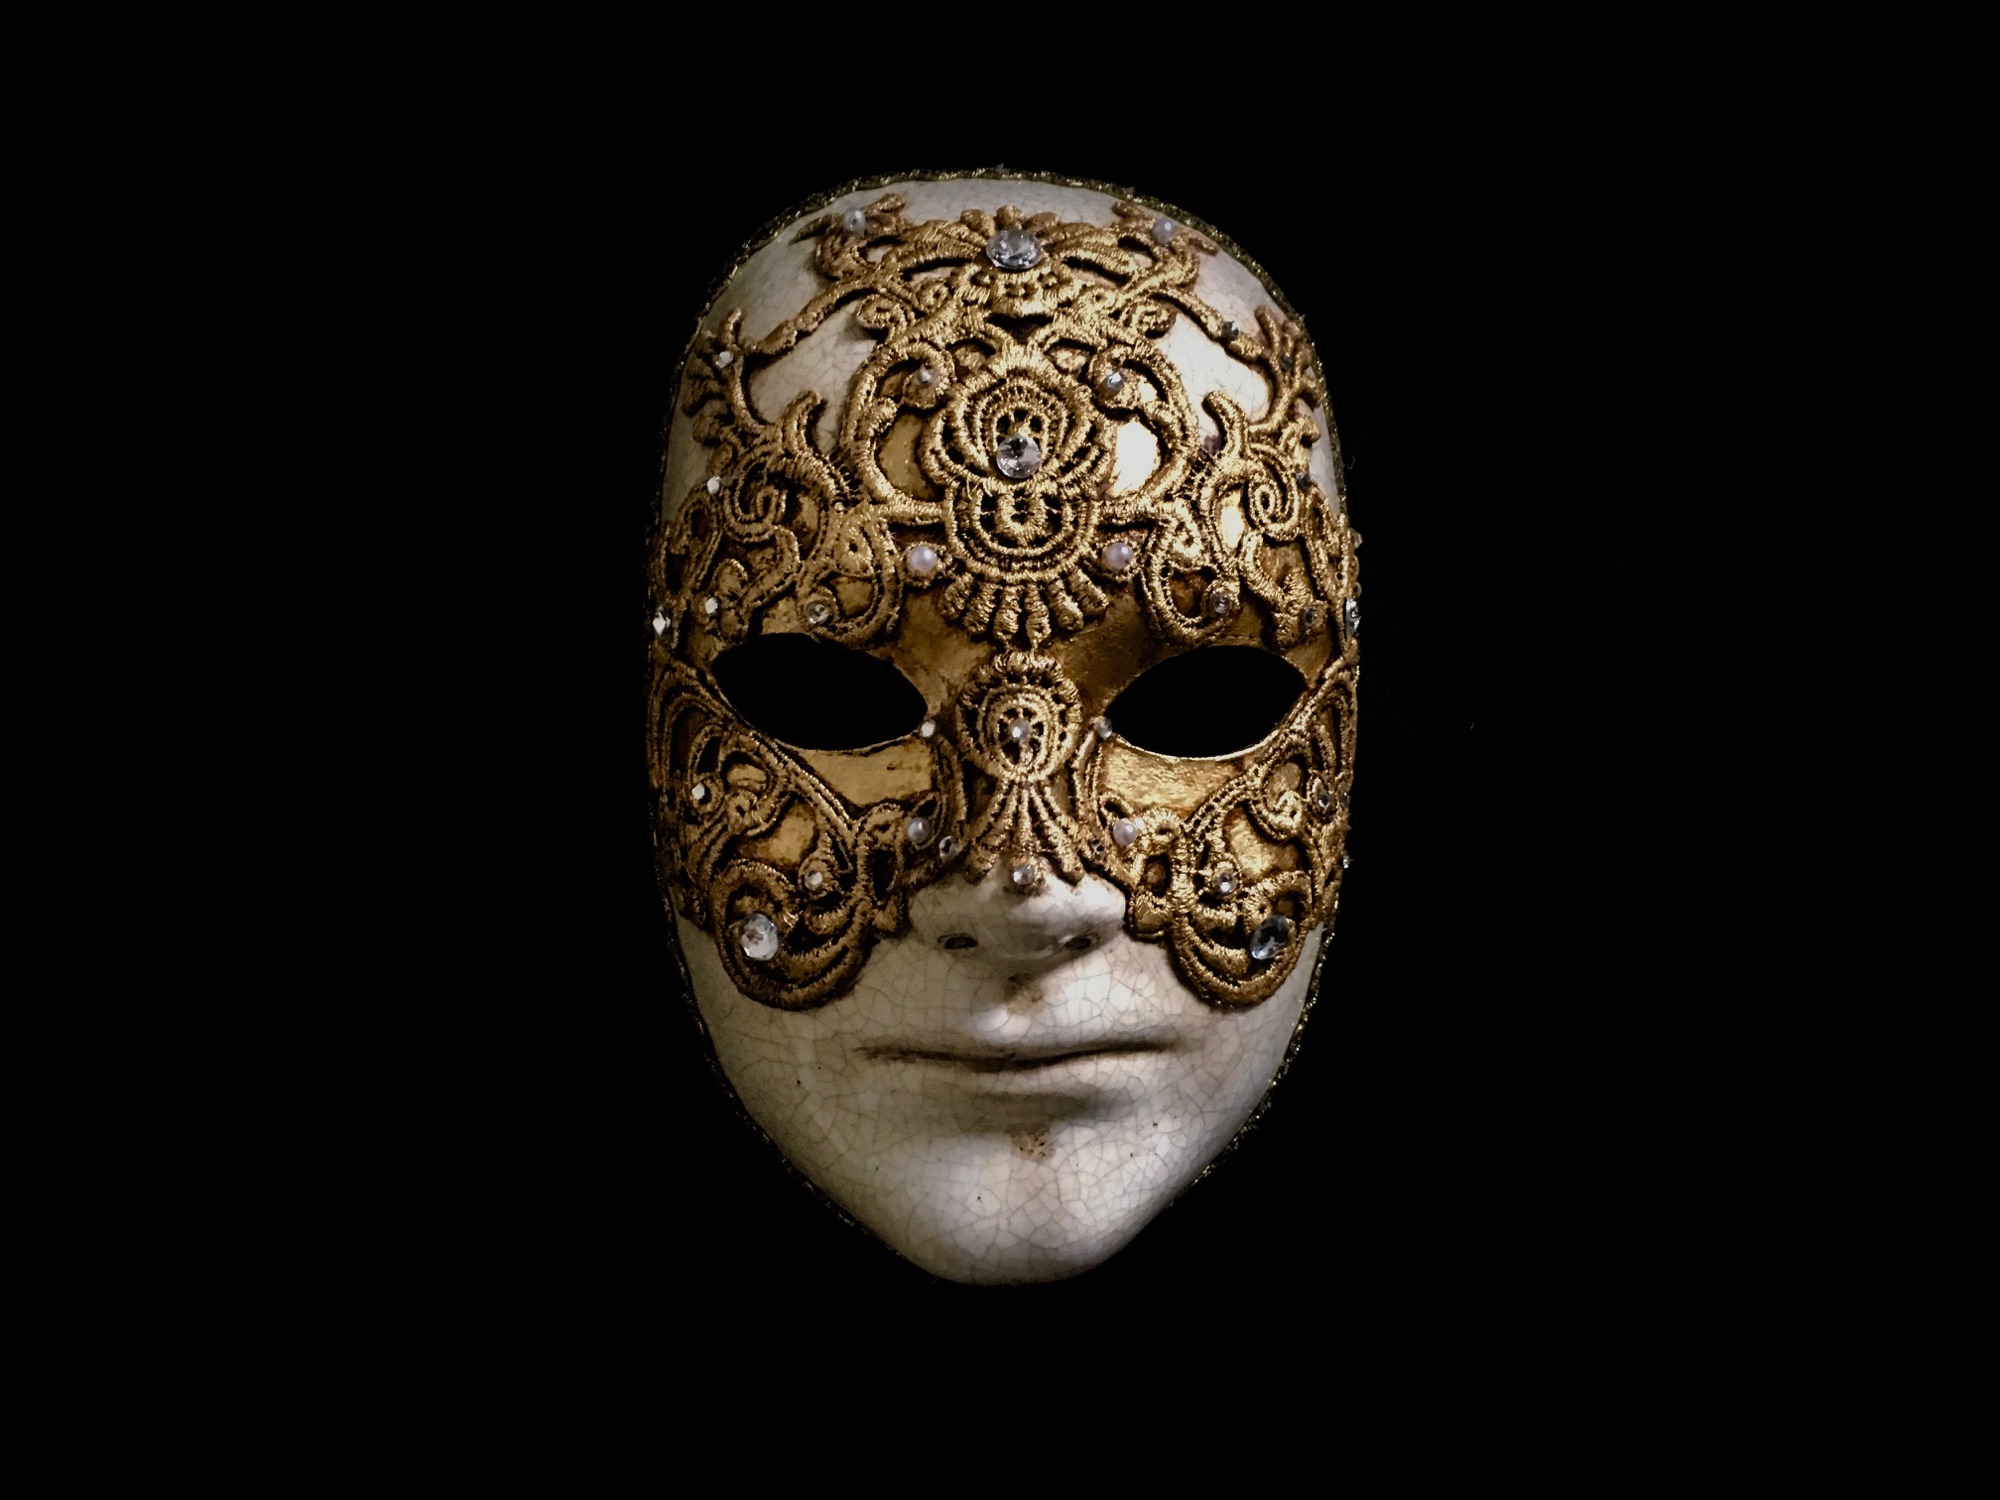 Gold Venetian mask worn by Tom Cruise in the movie Eyes Wide Shut